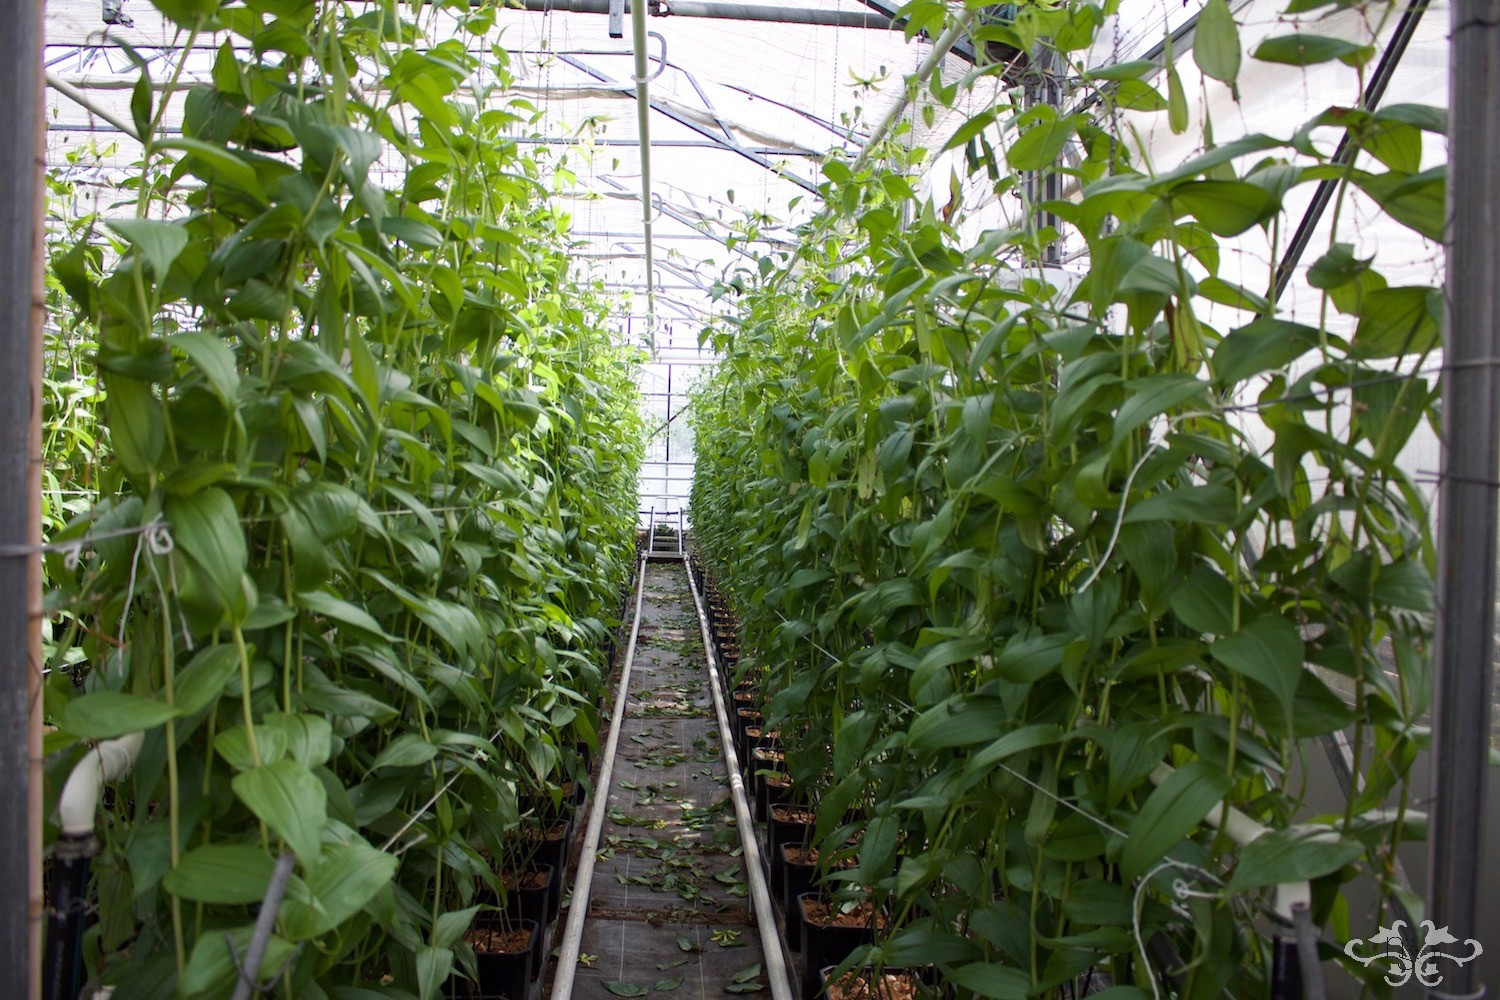 Aisles of Gloriosa plants growing tall at the nursery